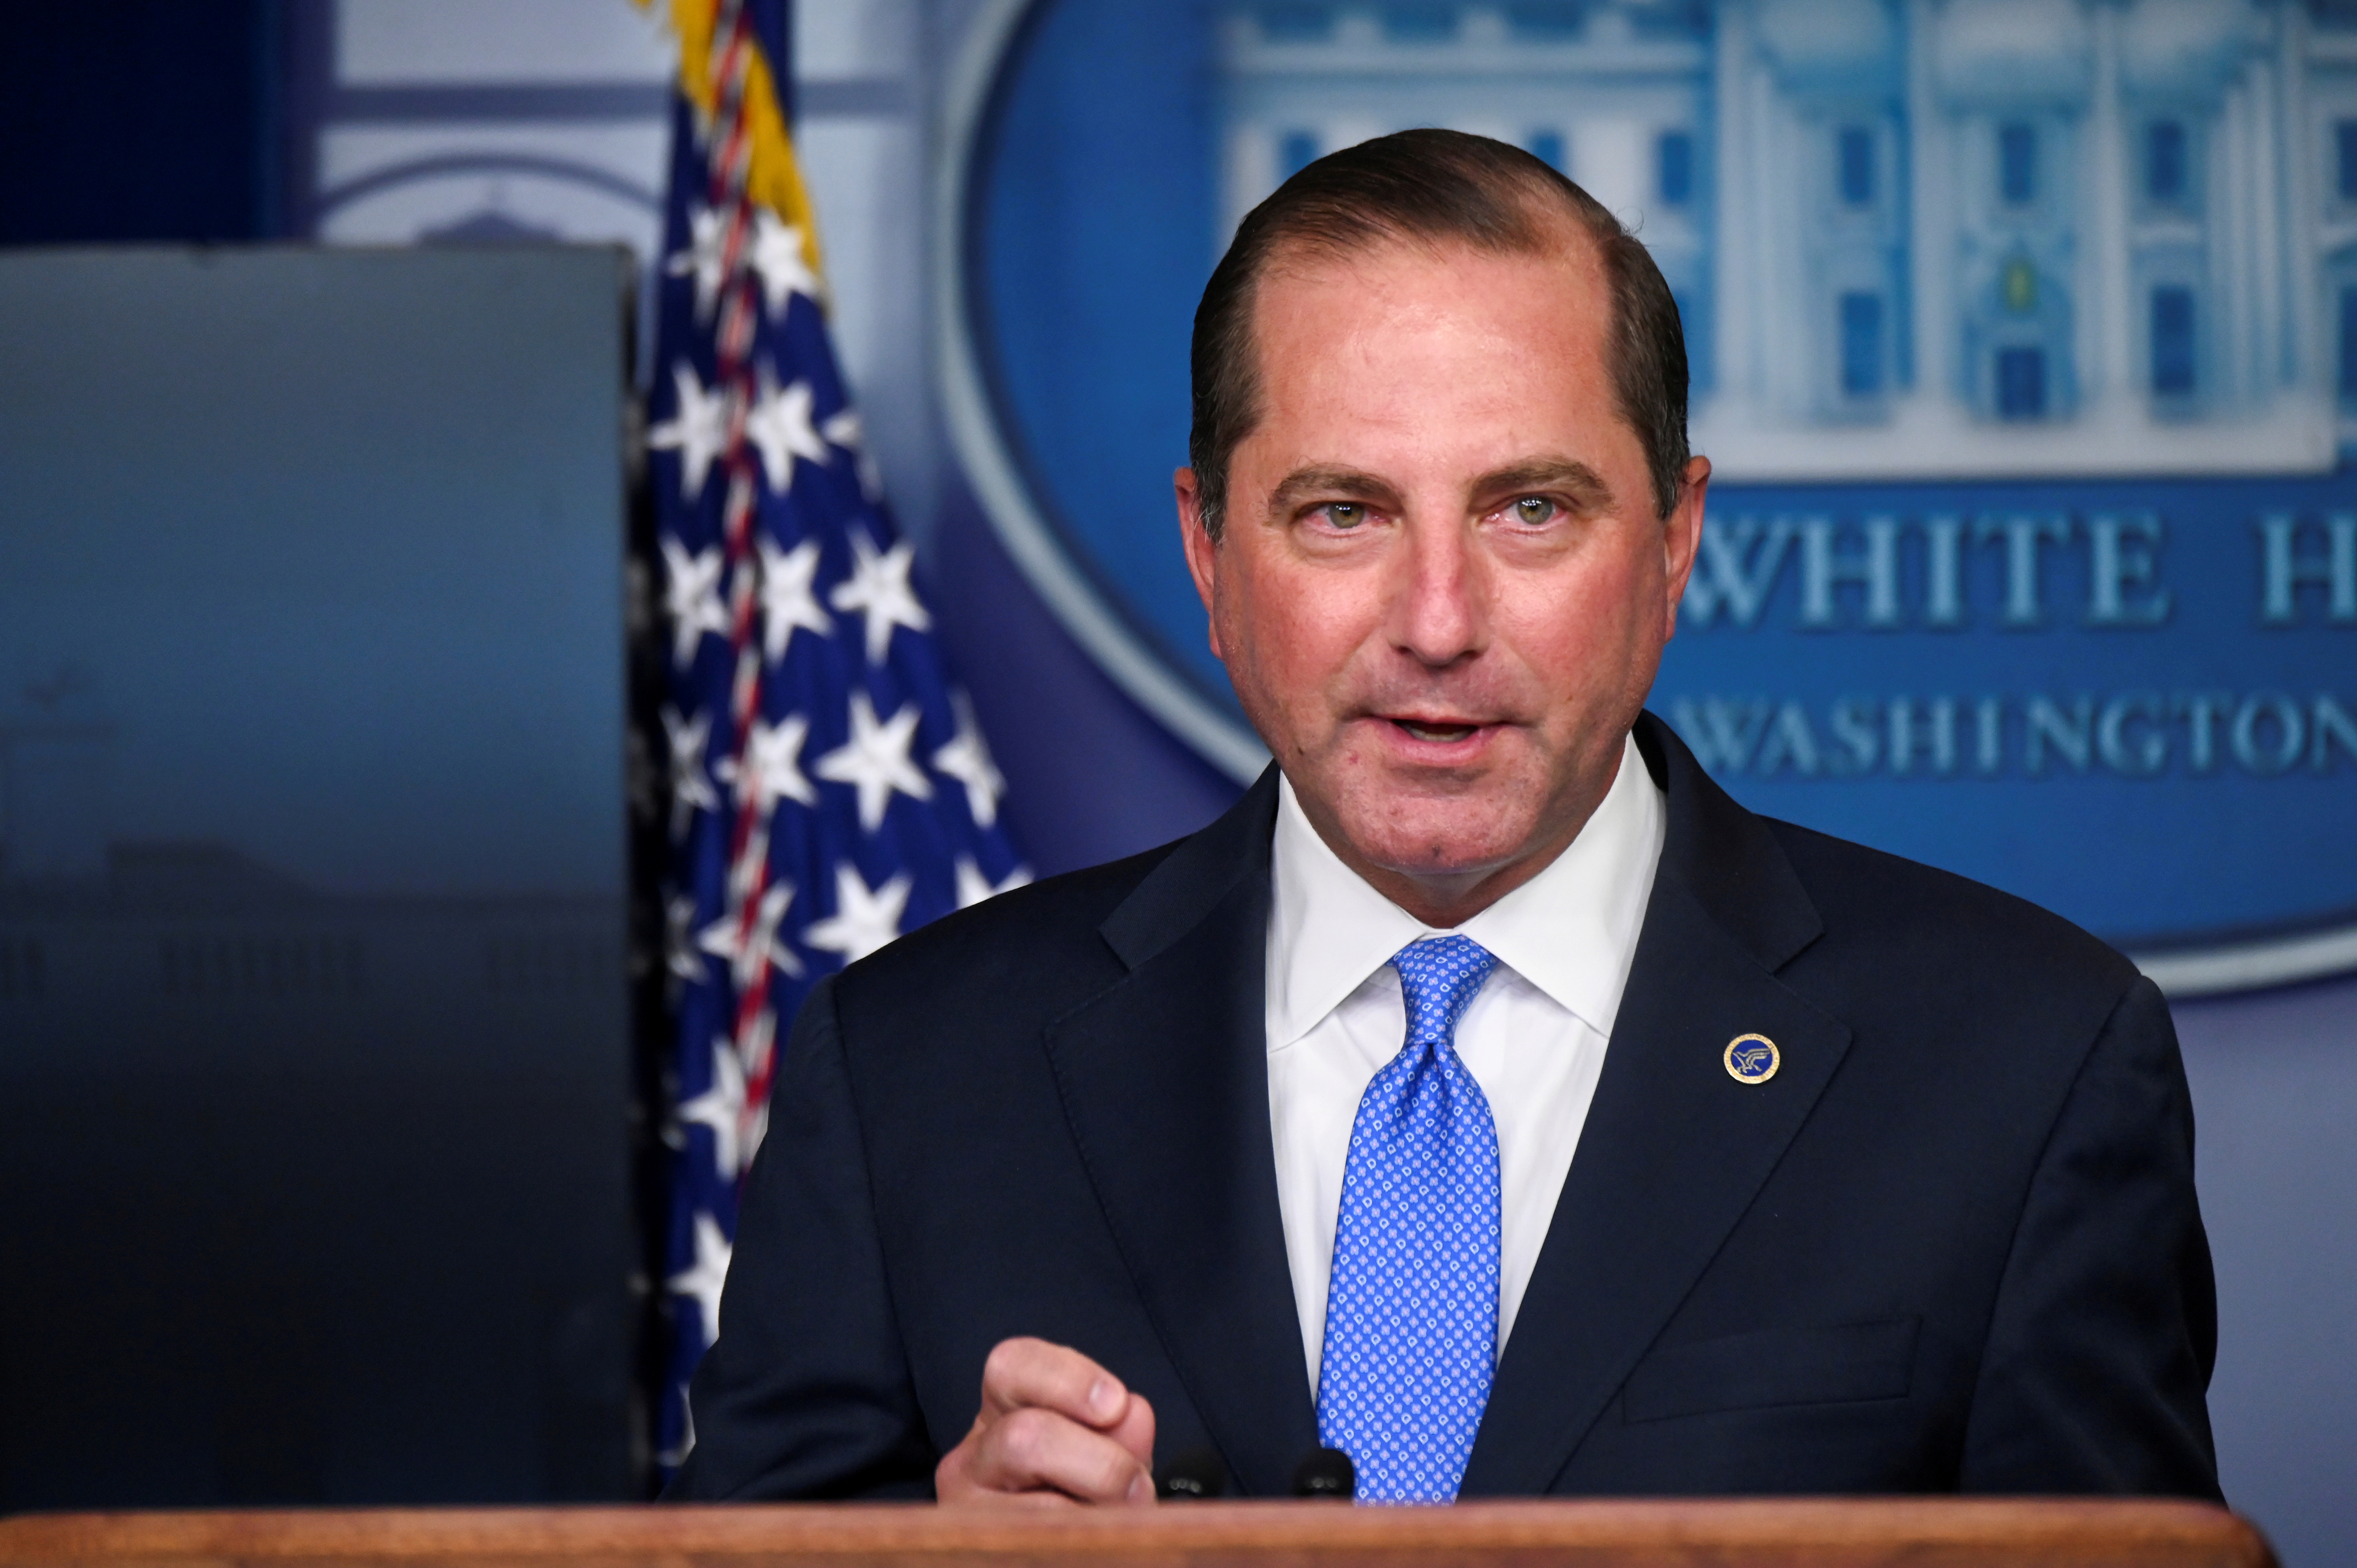 U.S. Health and Human Services (HHS) Secretary Alex Azar speaks during a news conference in the Brady Press Briefing Room of the White House in Washington, U.S. August 23, 2020. REUTERS/Erin Scott